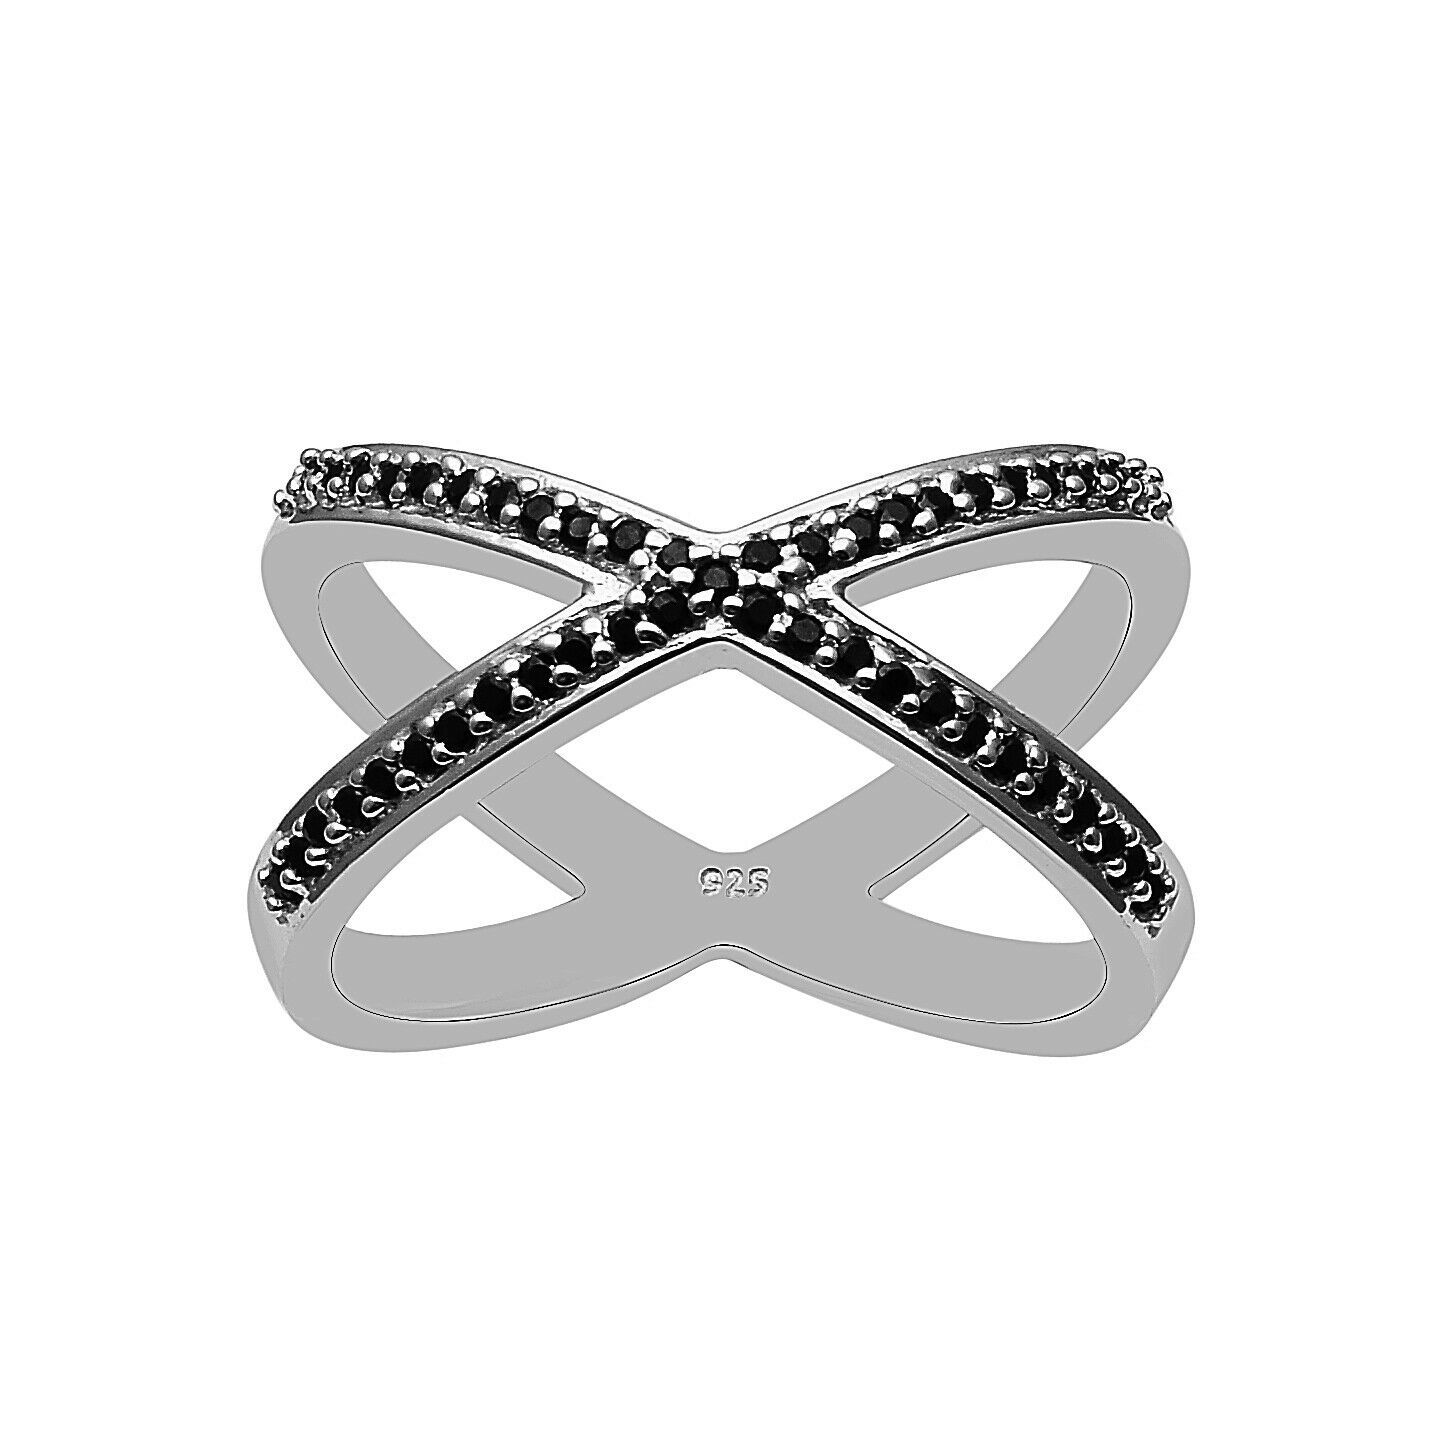 Primary image for Criss Cross Black Spinel Gemstone 1.2 mm 925 Fine Silver Wedding Ring